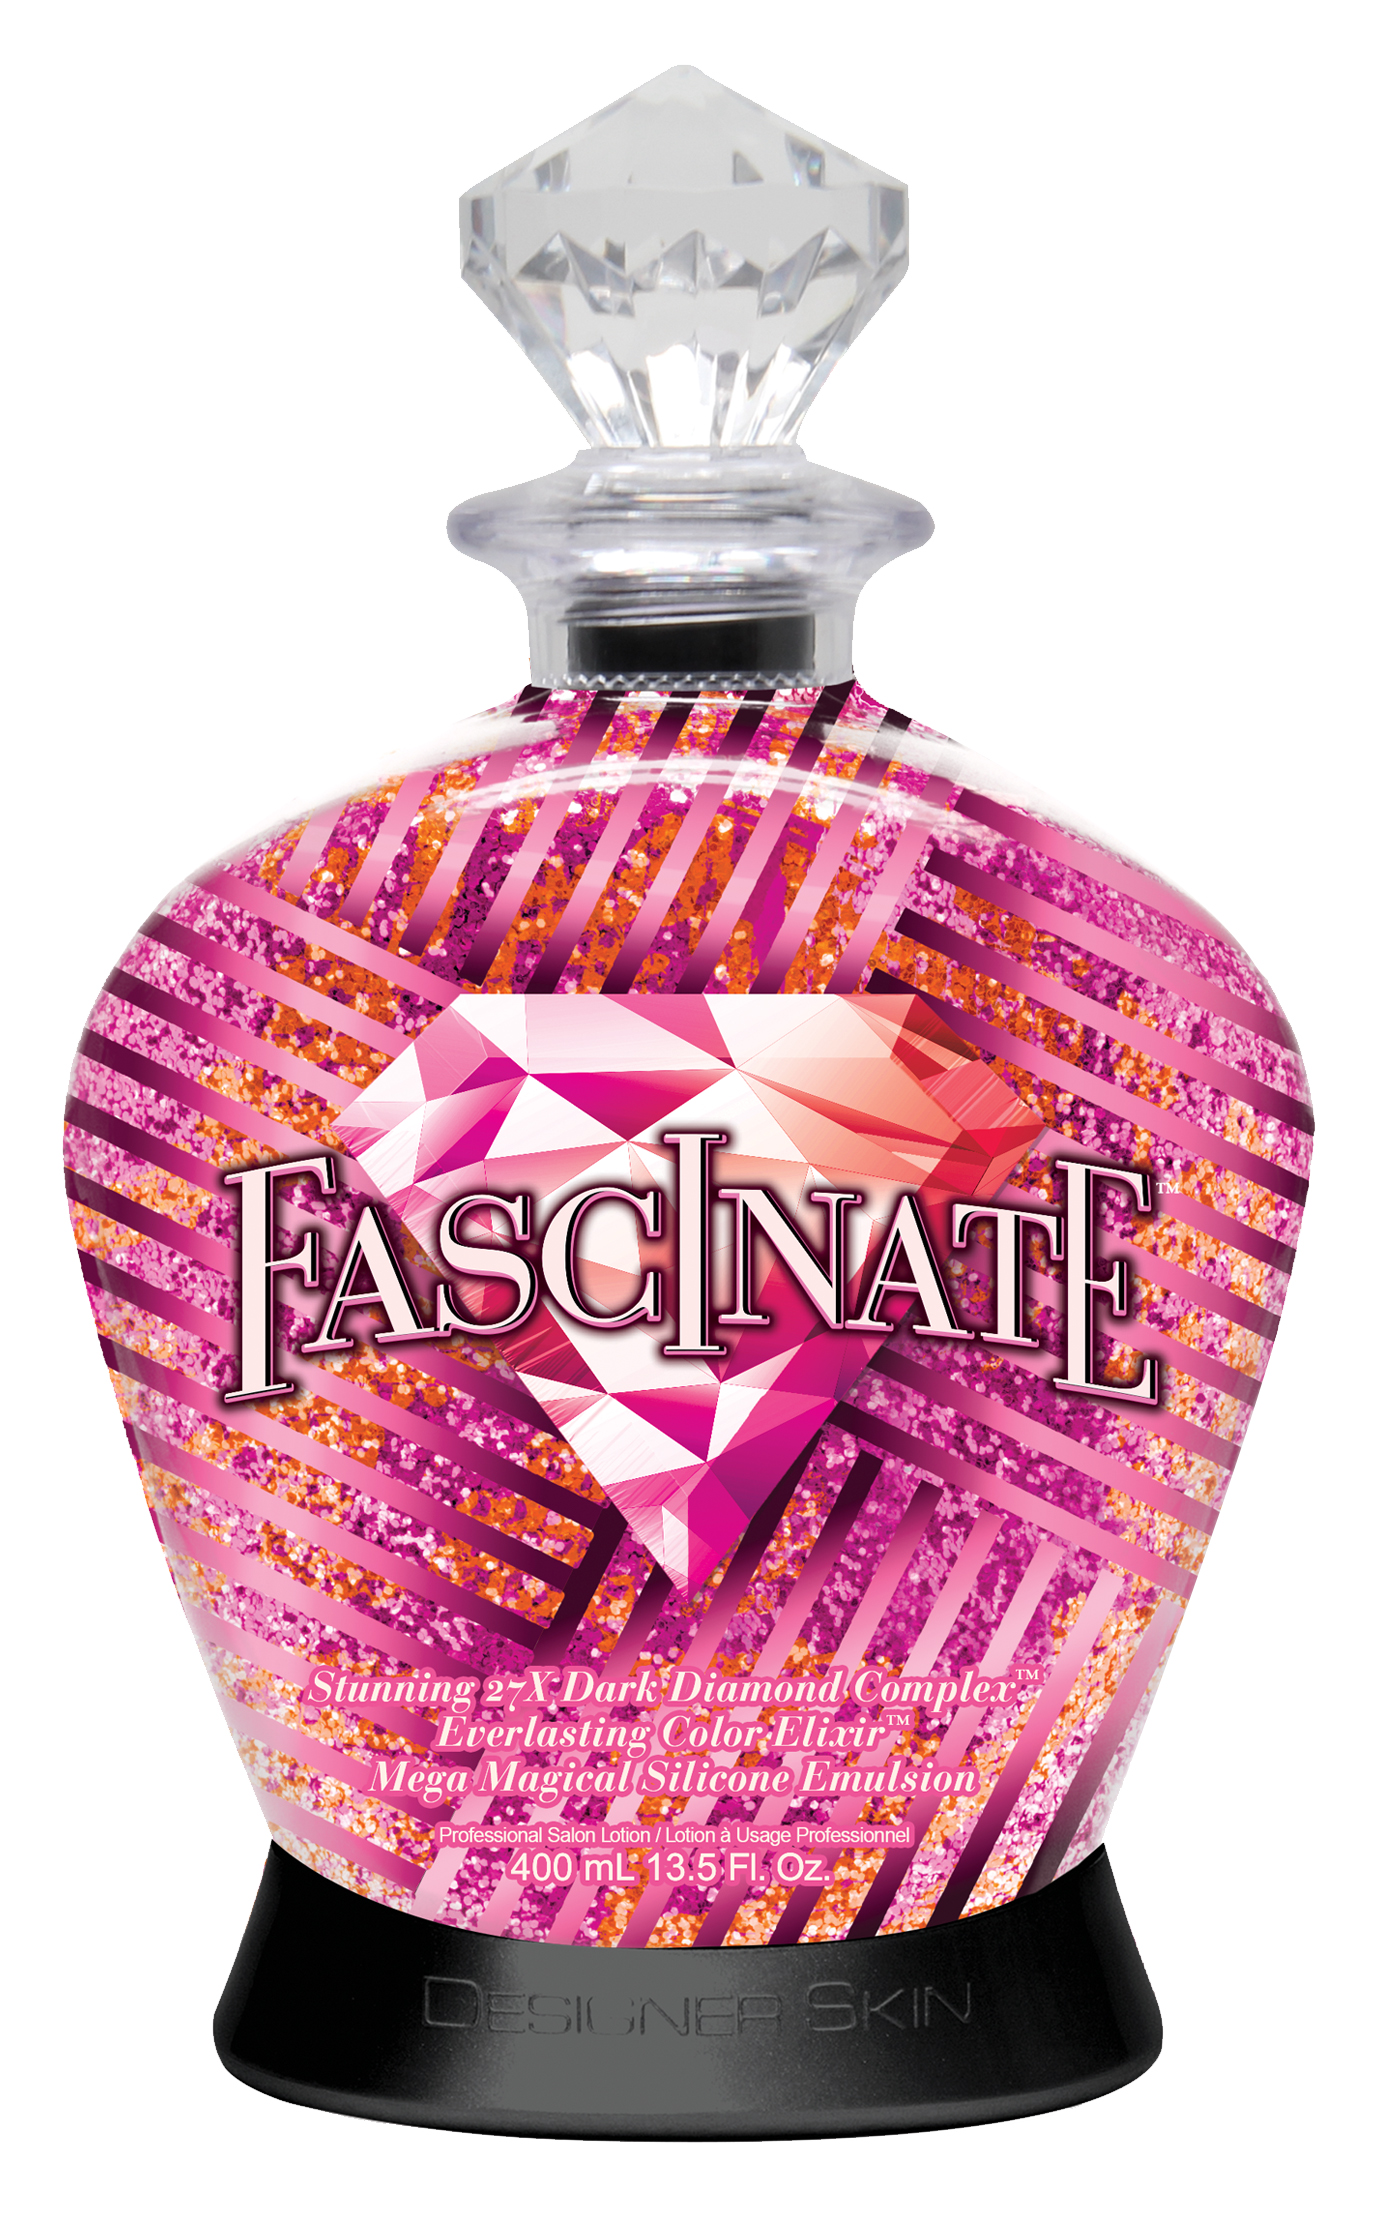 Fascinate™ Stunning 27X Dark Diamond Complex™